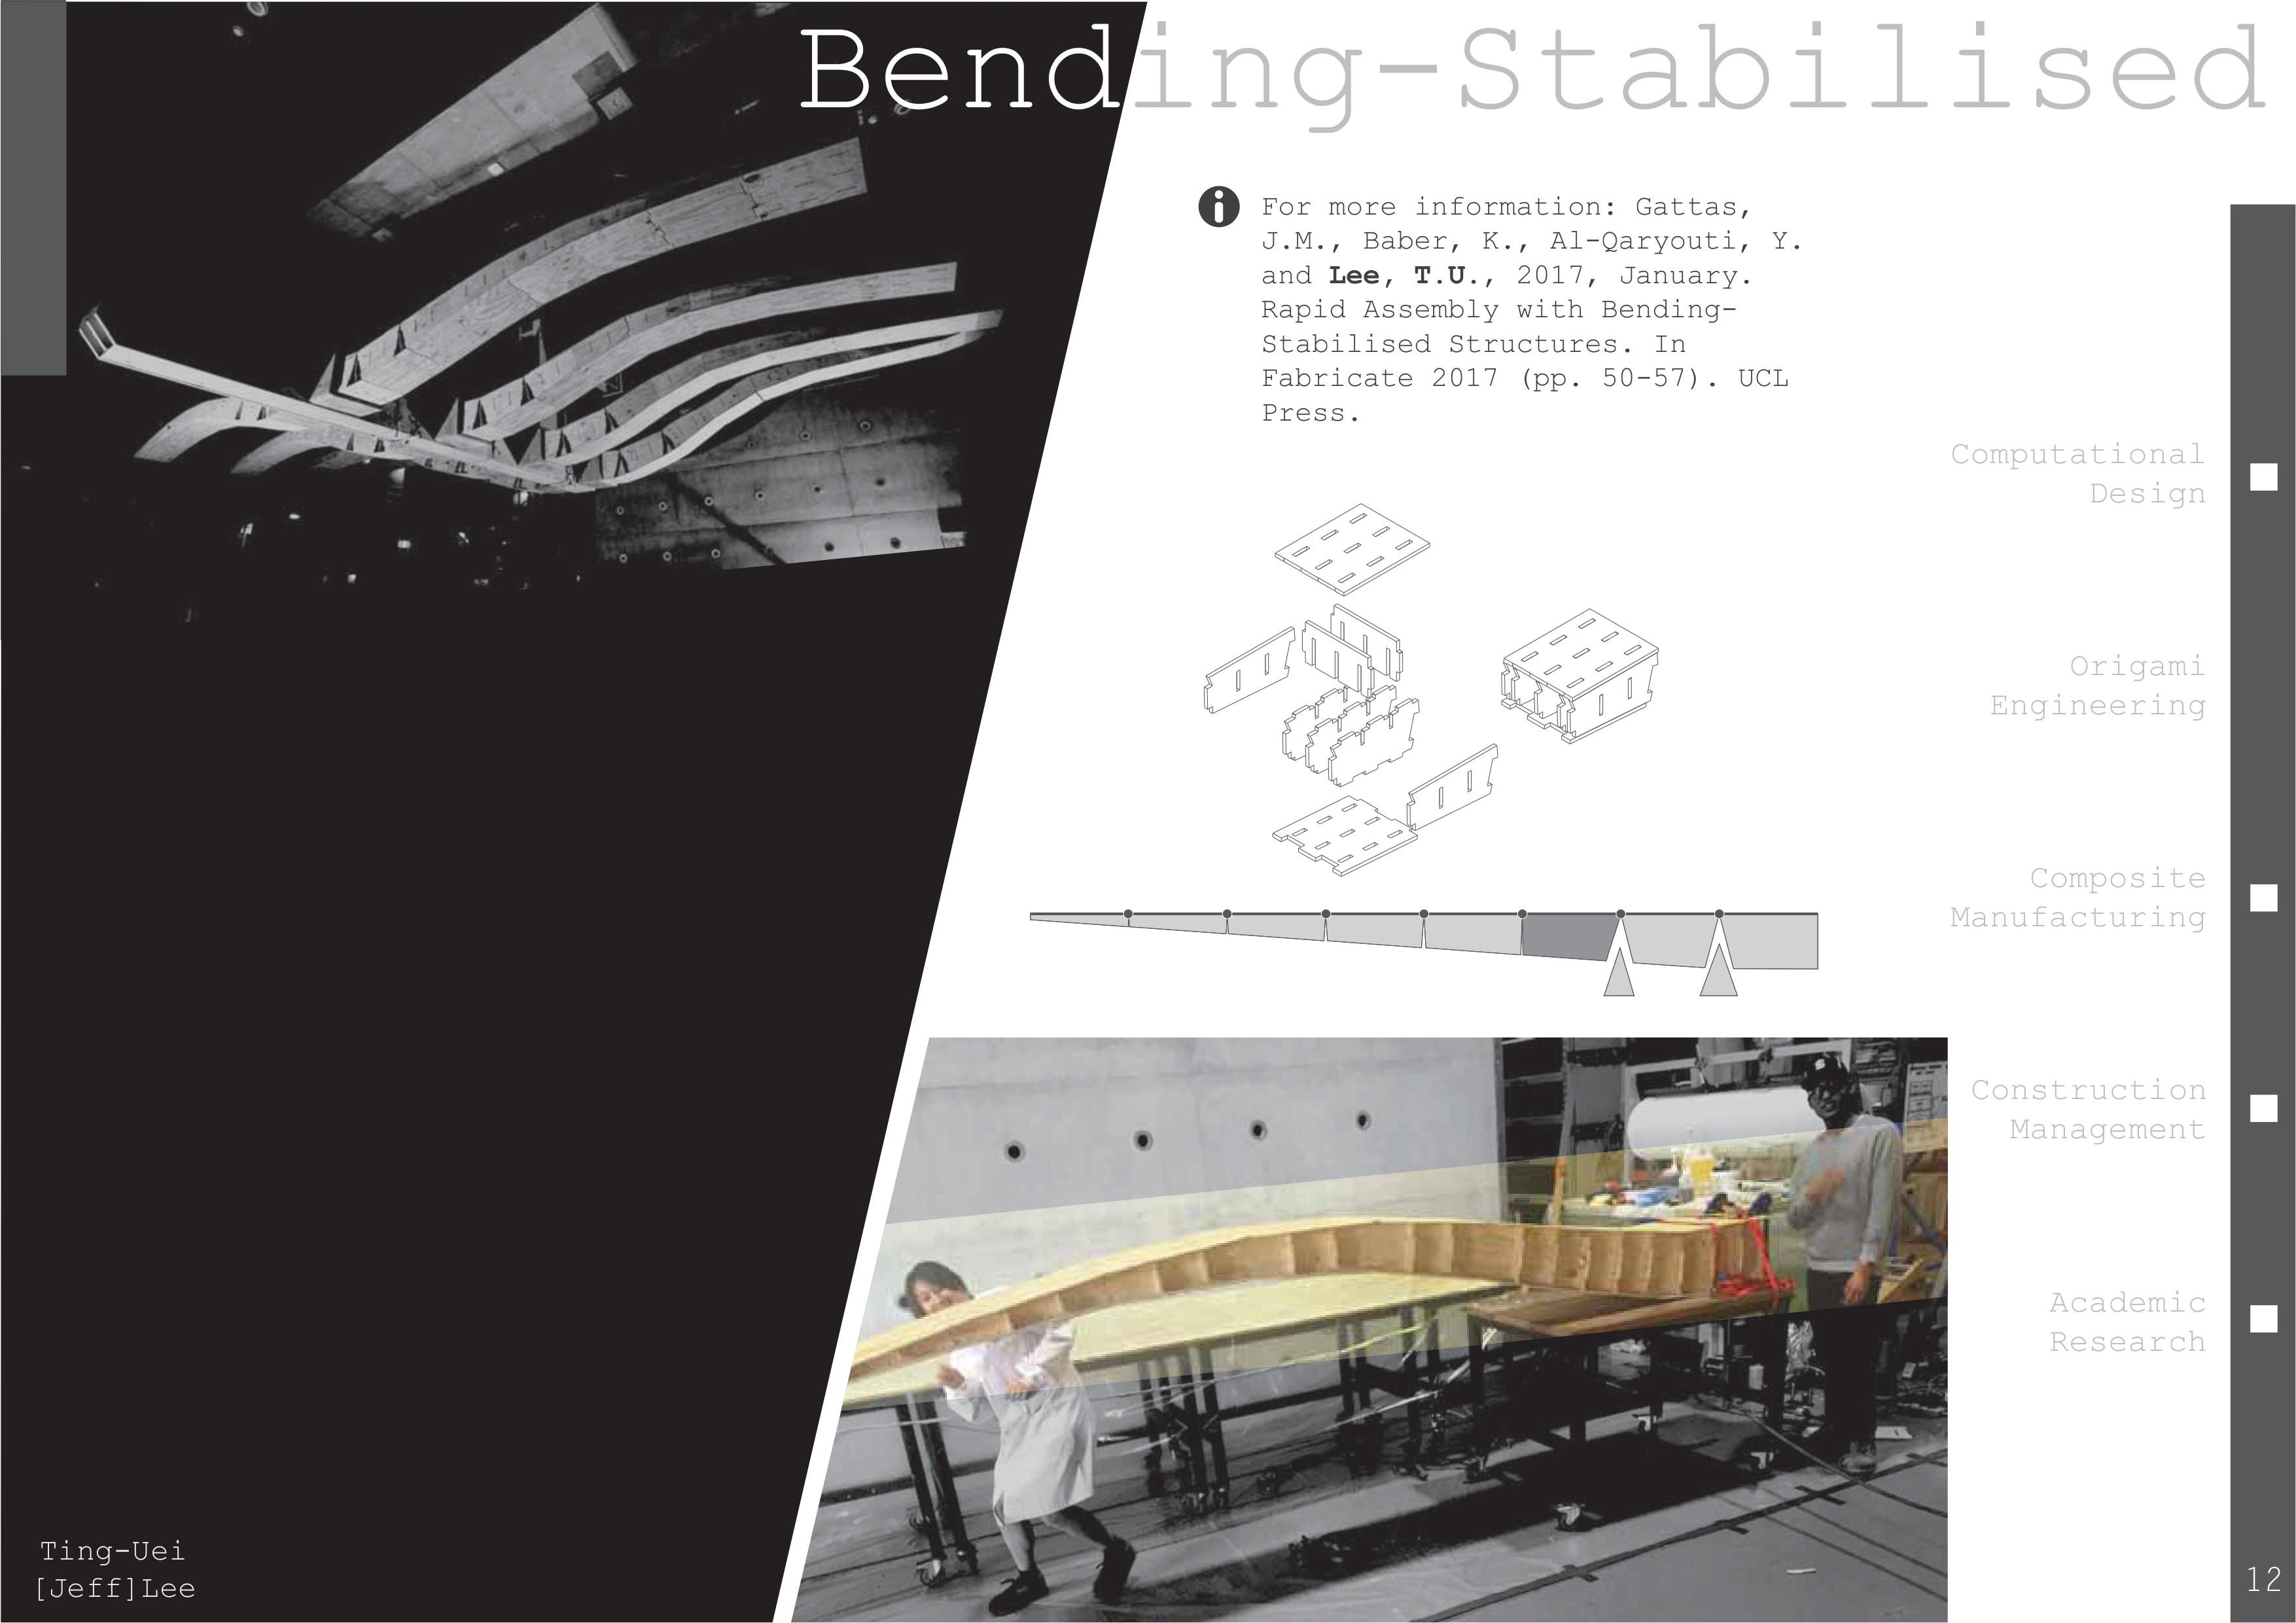 Bending-Stabilised